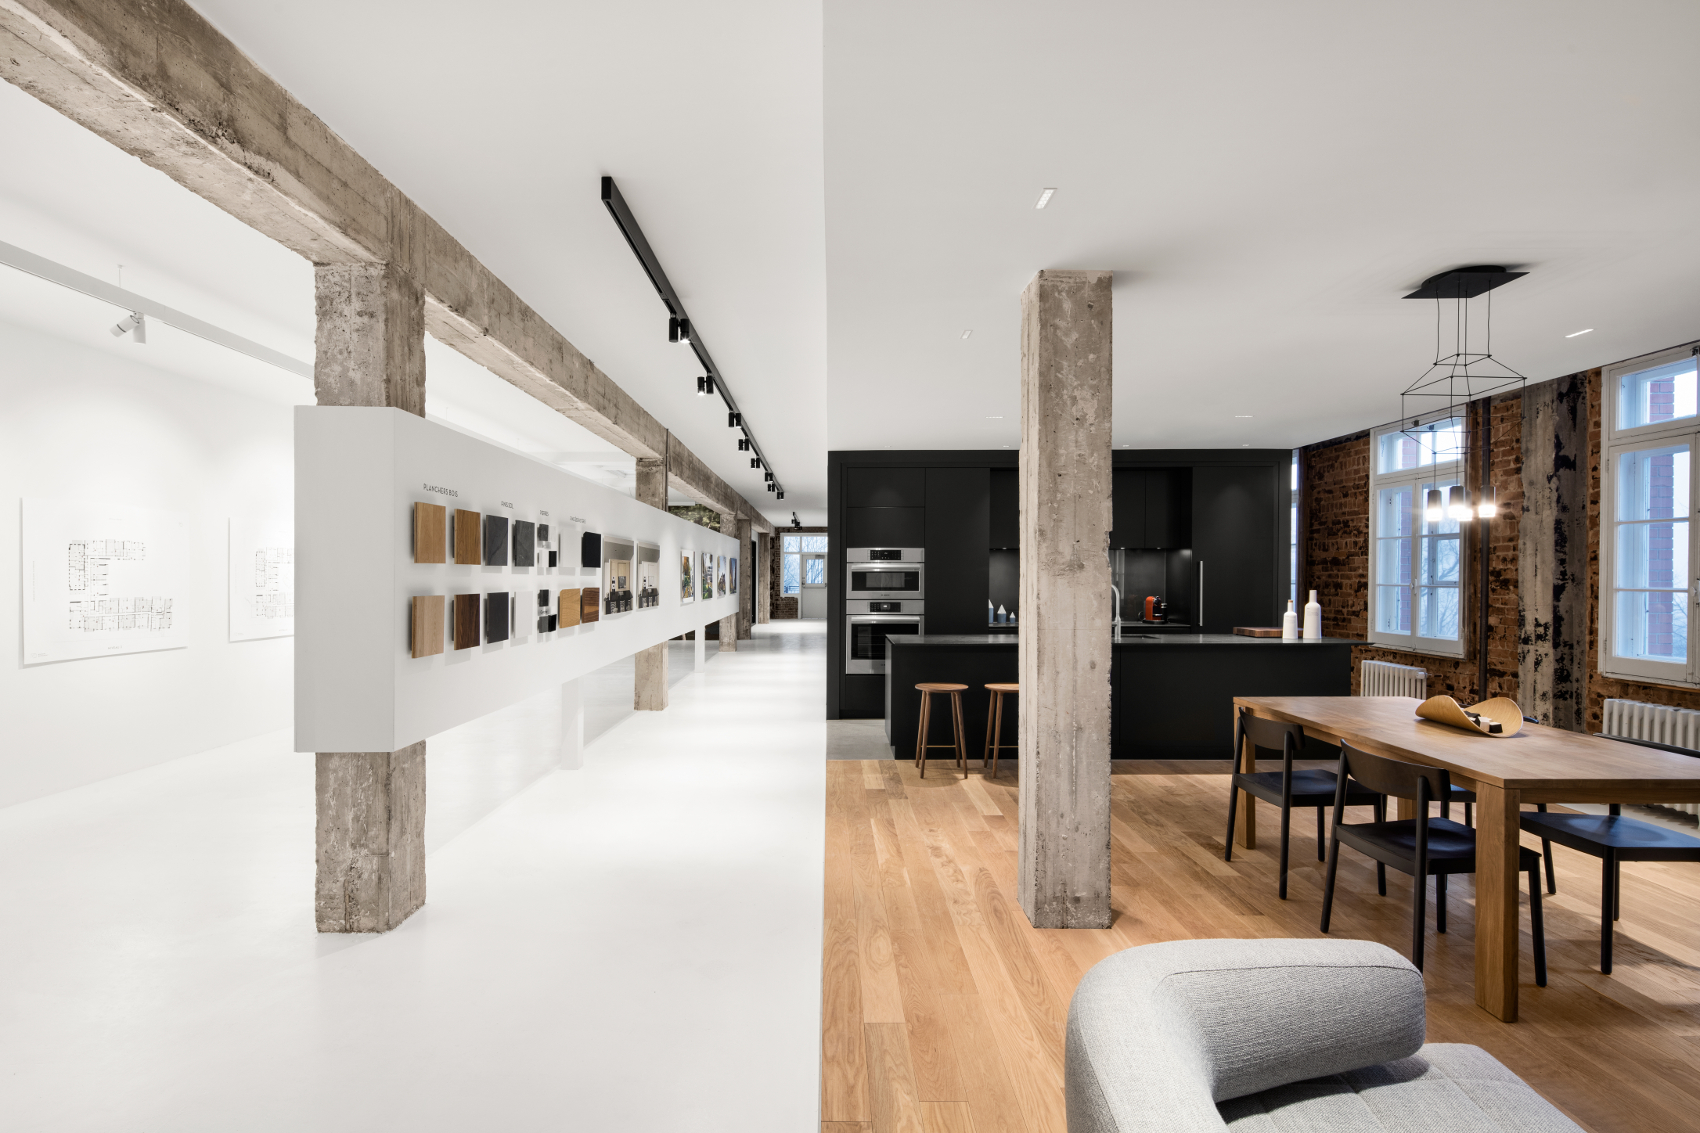 MAISON-OUTREMONT-3_low.jpg